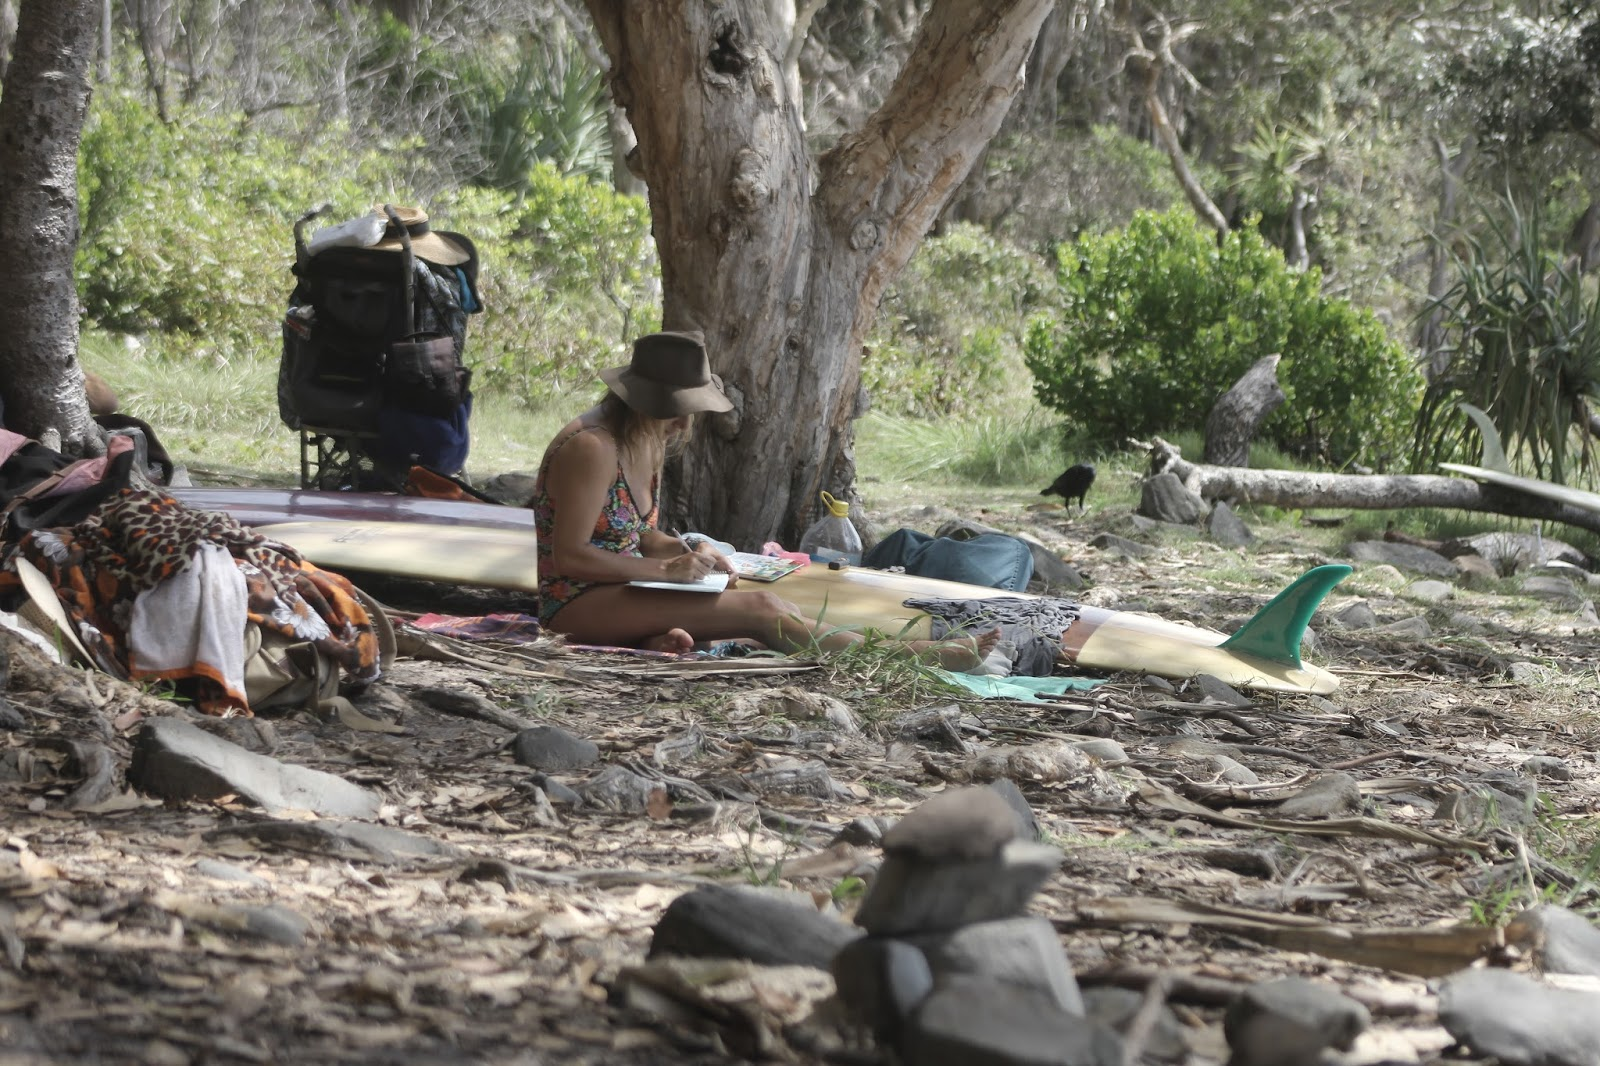 11-03-2016-australia-siebert-surfboards-04